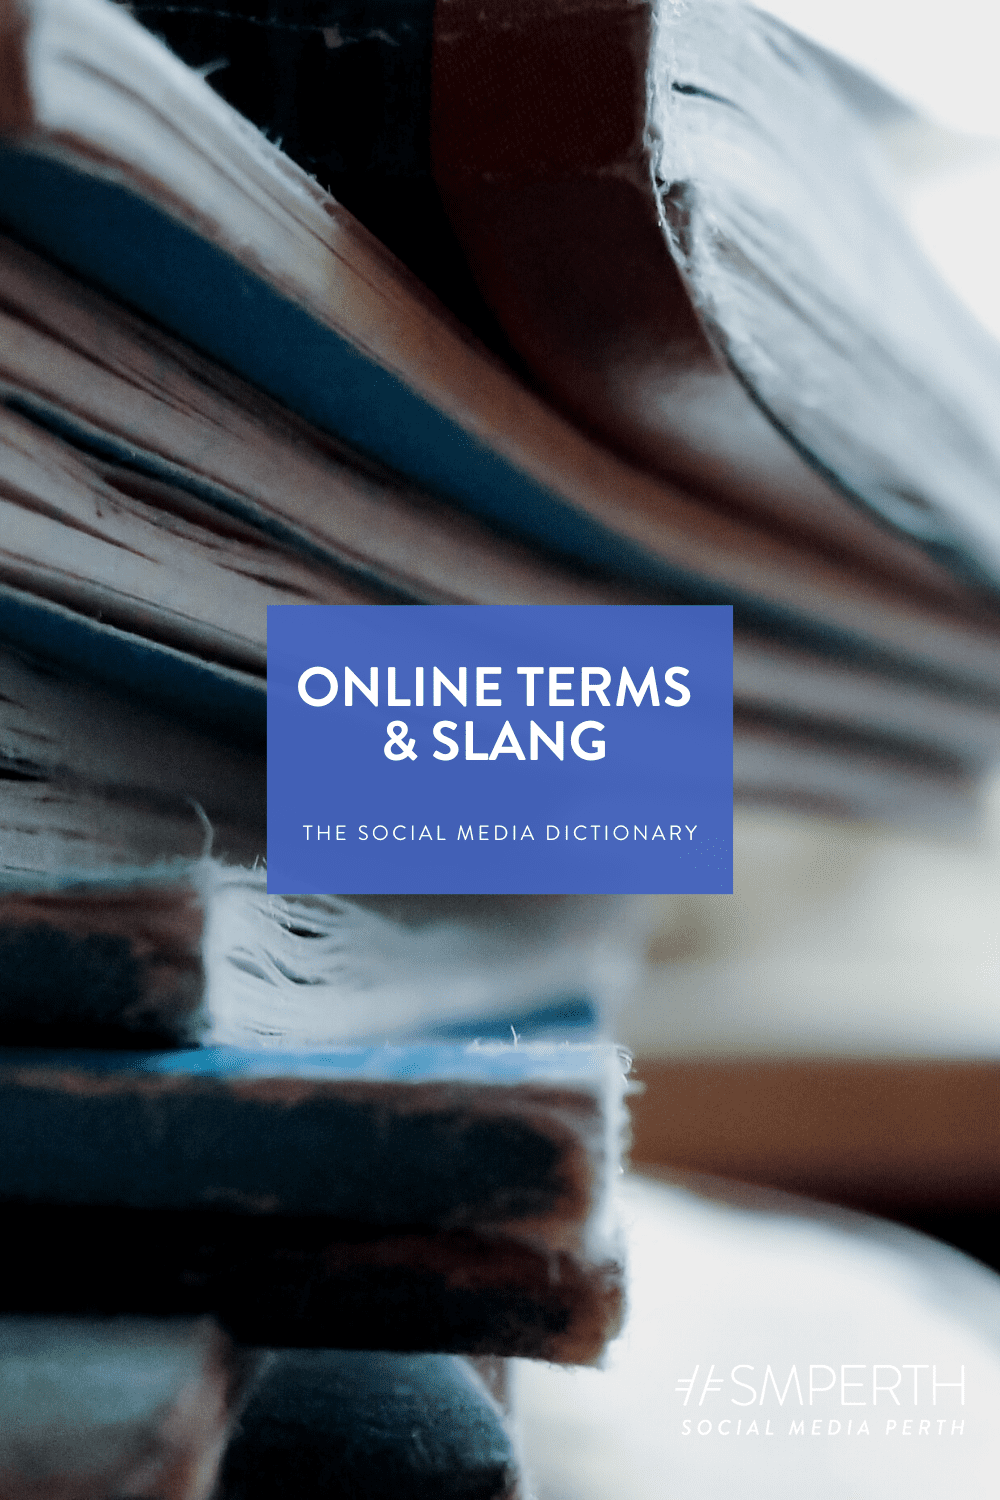 The Social Media Dictionary: Online Terms, Slang and Acronyms